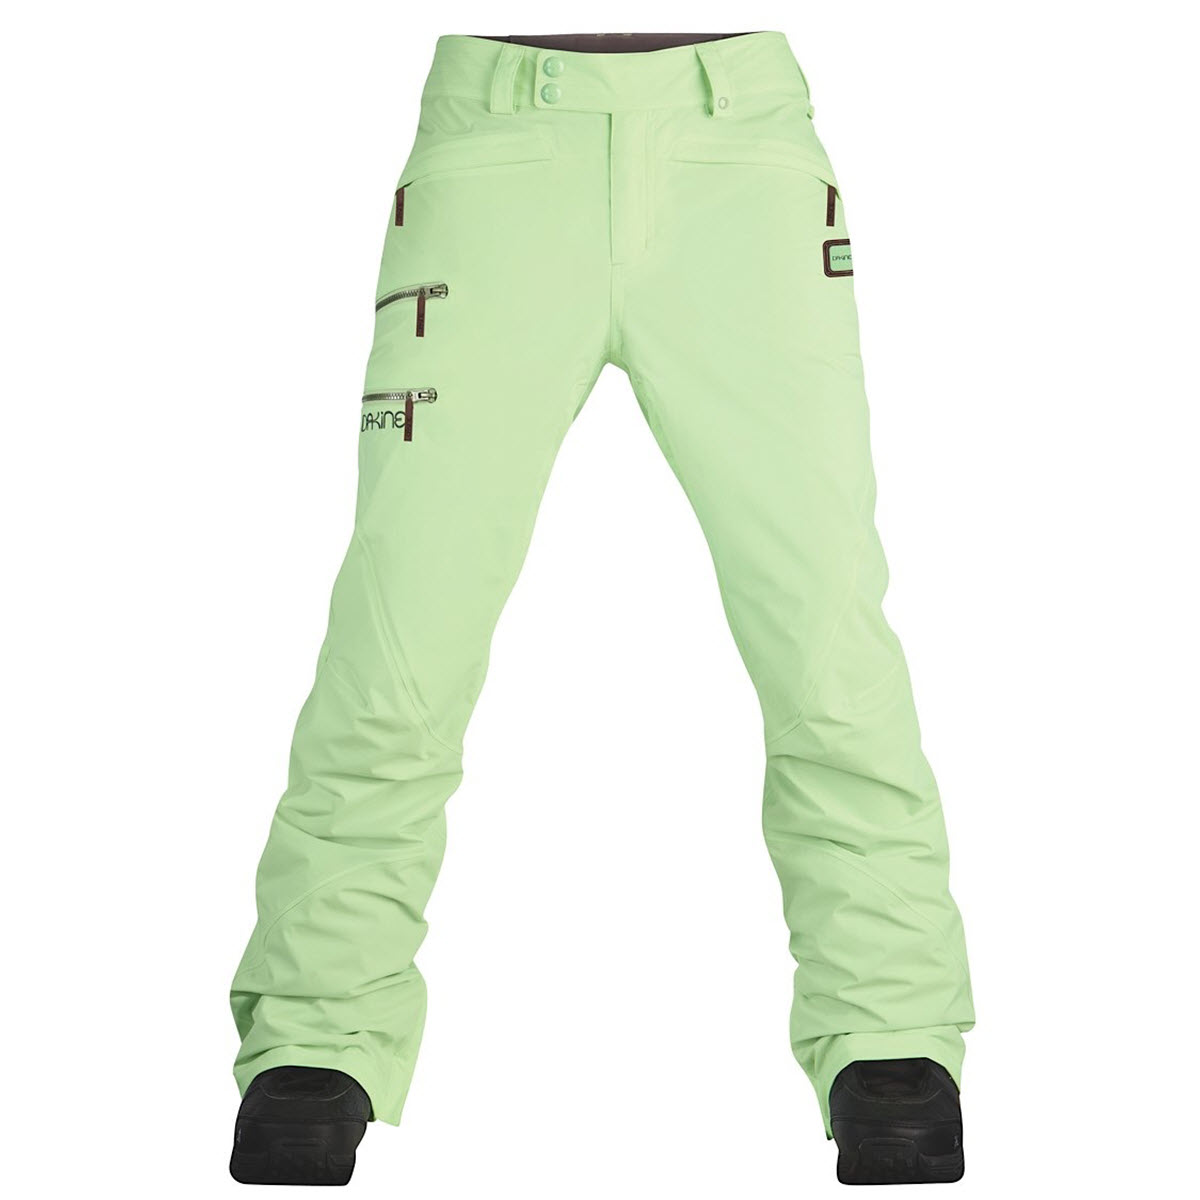 Dakine Womens Monika Snowboard Pants 2014 Patina Green Medium